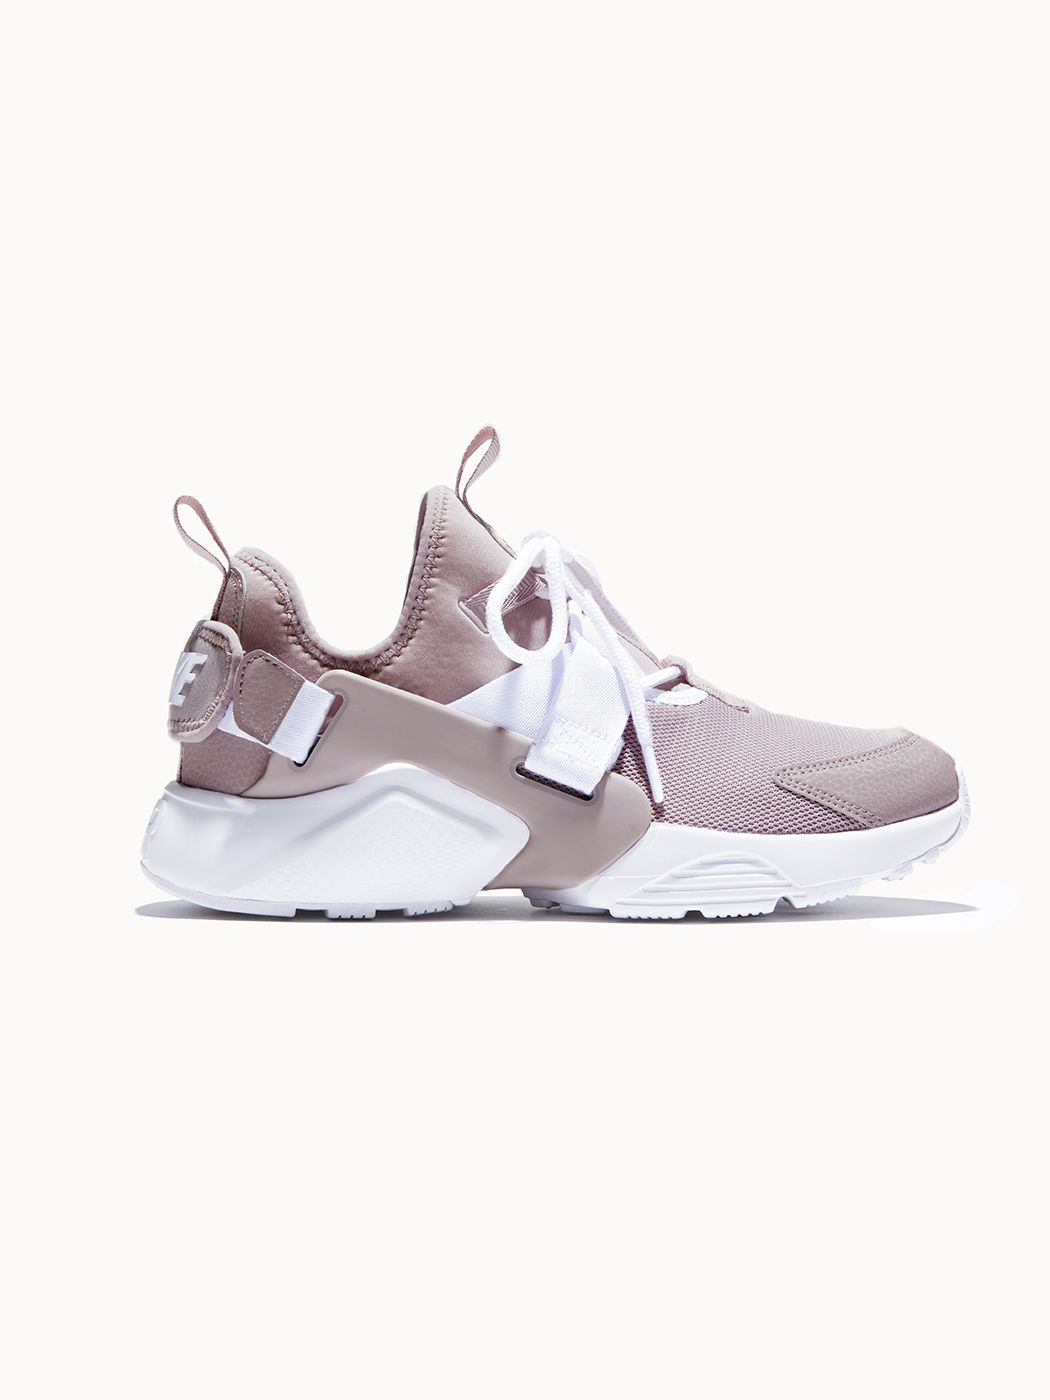 5f2ba800cdce NIKE Nike Air Huarache City Low Particle Rose Particle Rose-White SNEAKERS